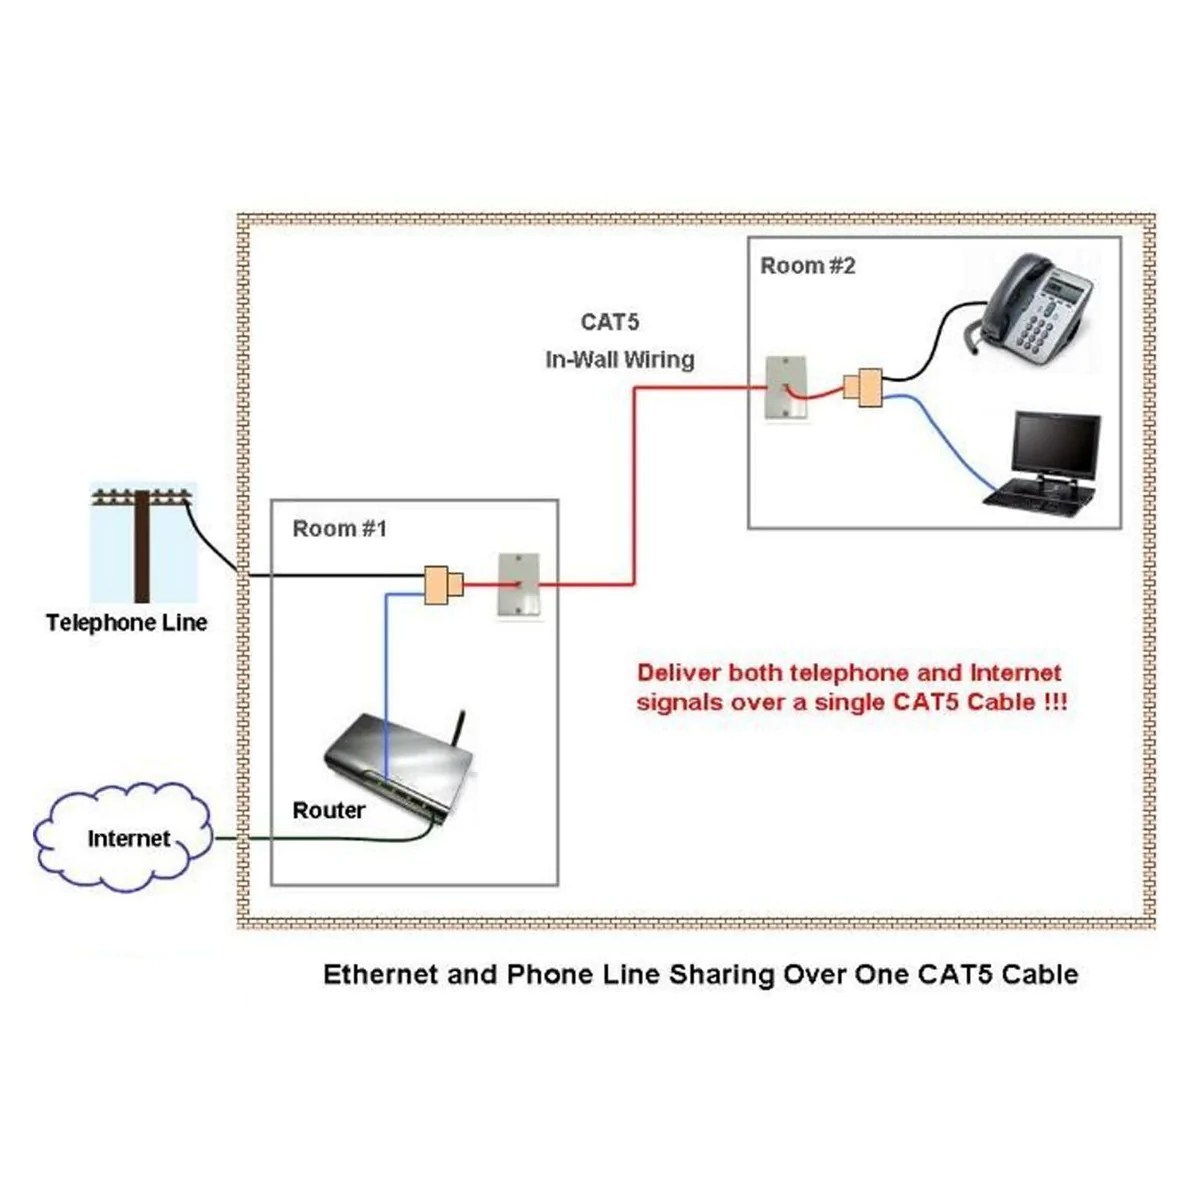 hight resolution of rj45 rj11 splitter cable sharing kit for ethernet and phone lines dualcomm